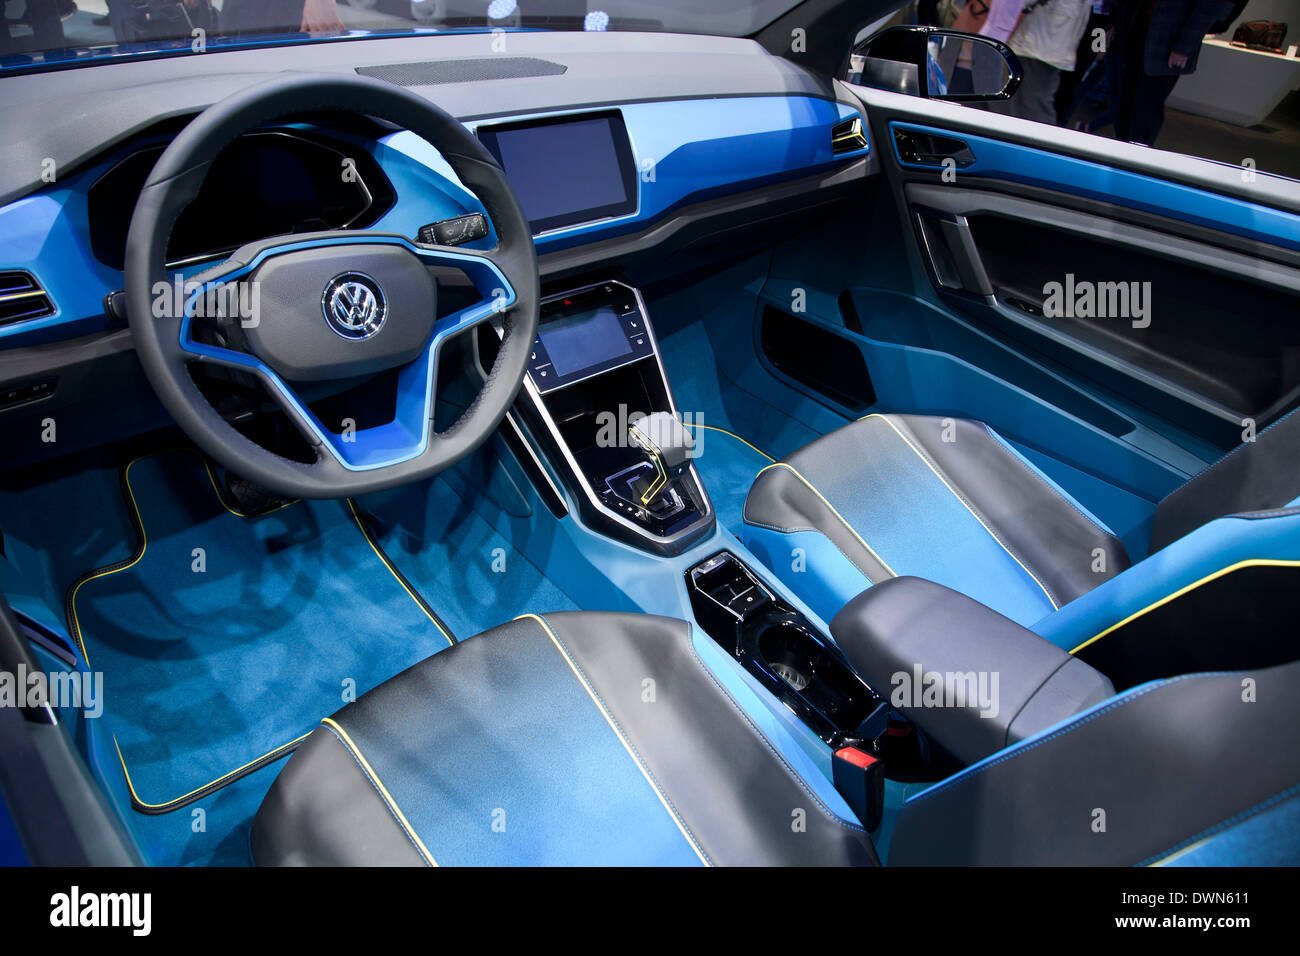 VW T-ROC SUV concept at the 84th Geneva International Motor Show 2014. - Stock Image